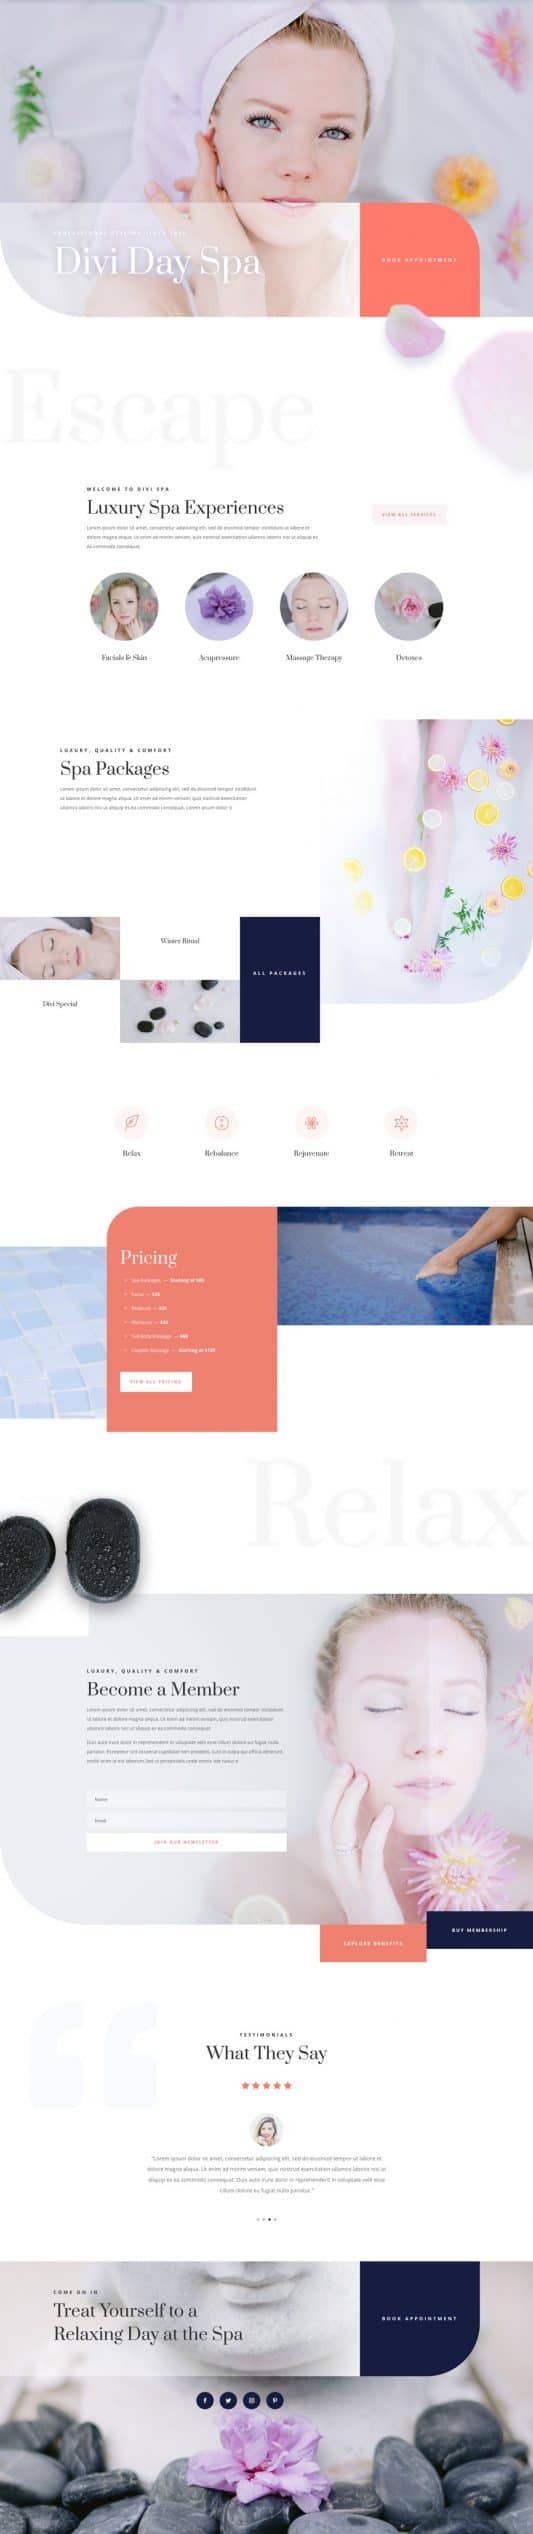 Day Spa Web Design 5